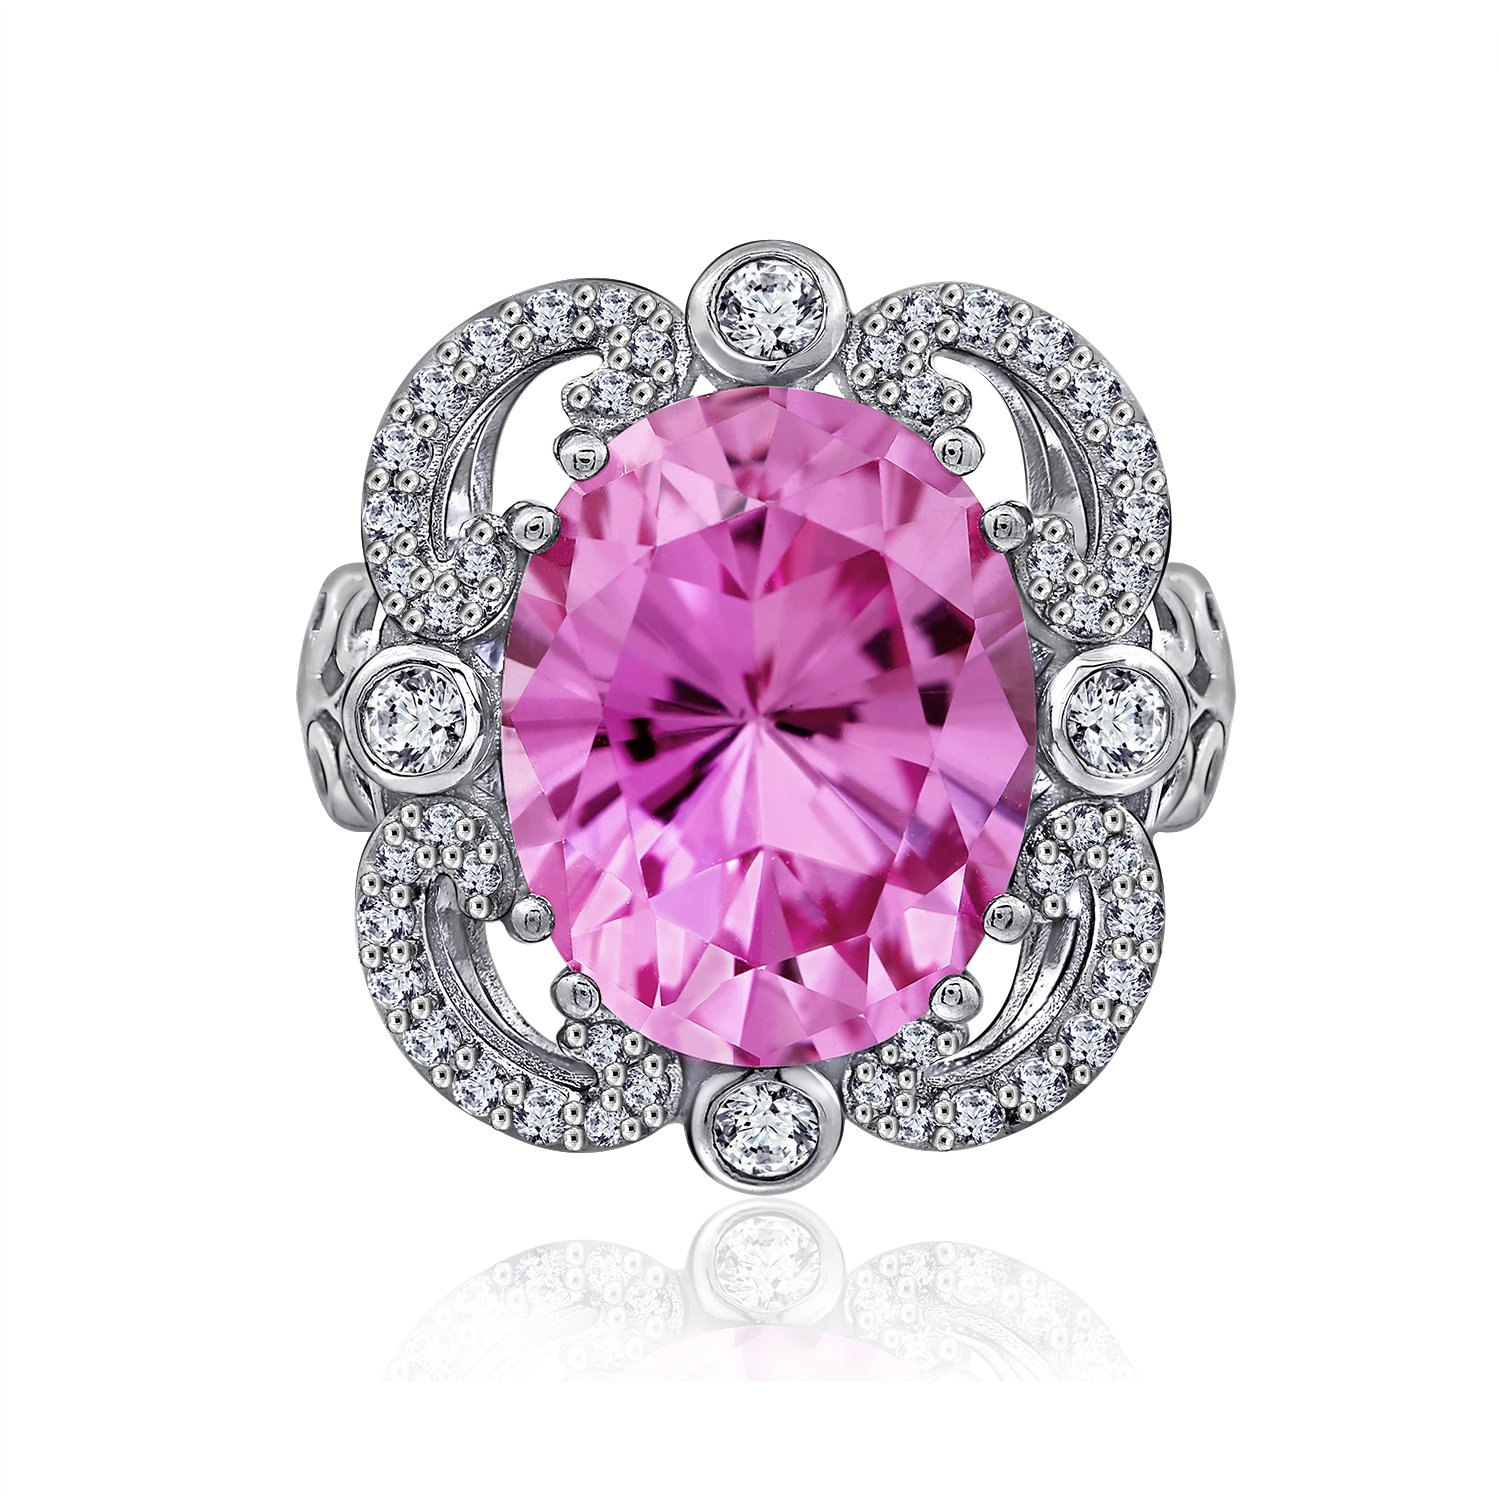 Amazon.com: EC by Erica Courtney Simulated Pink Sapphire Statement ...